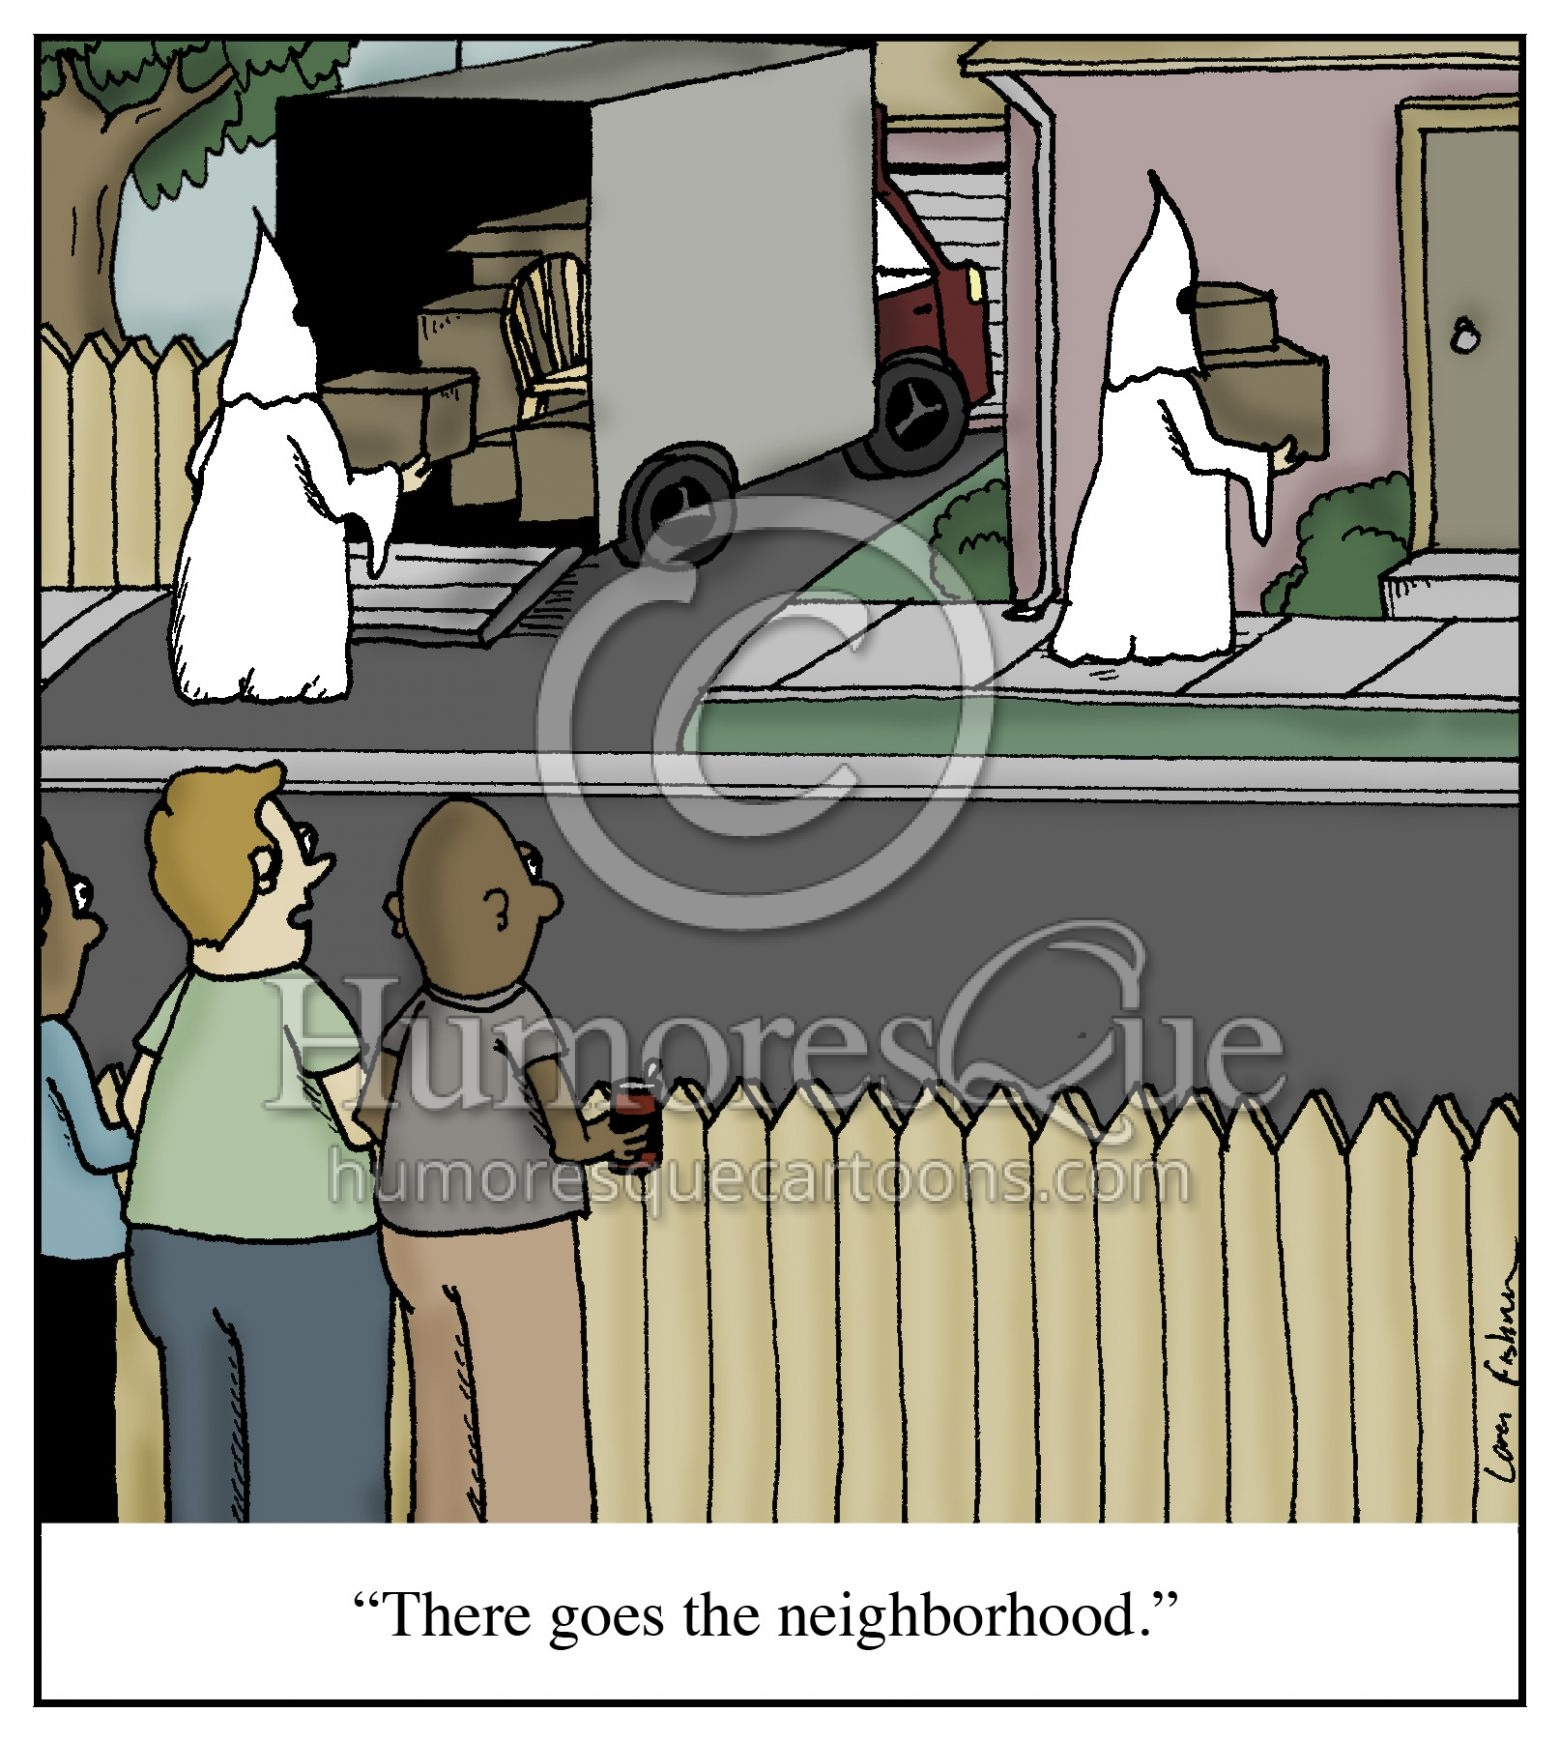 KKK real estate neighborhood cartoon